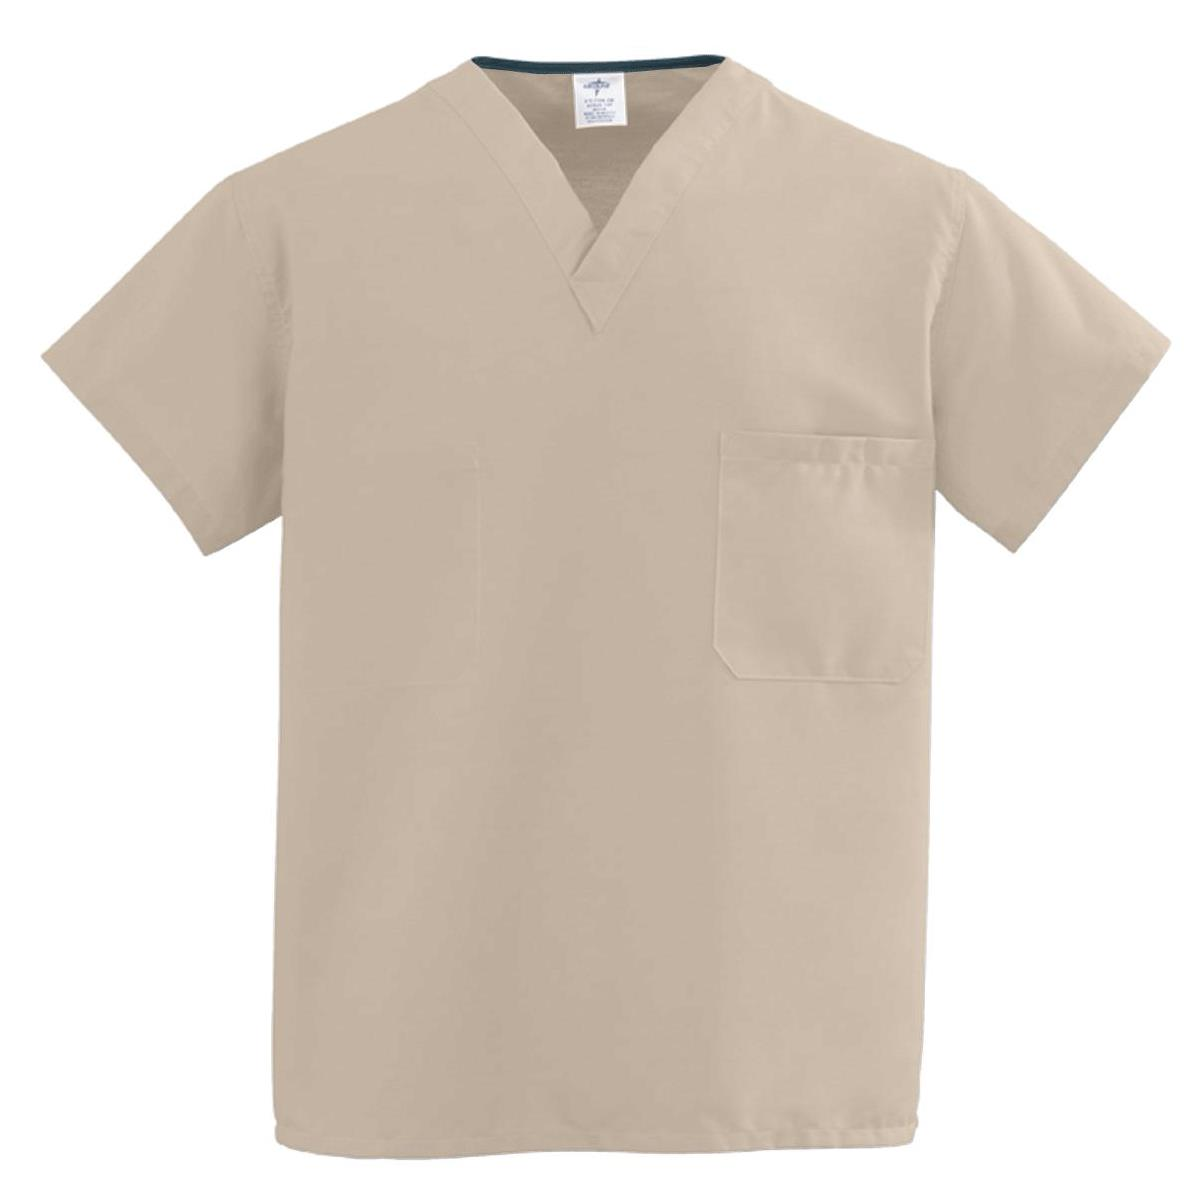 ecdf026ce2e 31120183117Medline-ComfortEase-Unisex-One-Pocket-Reversible-Scrub -Tops---Khaki-L.png